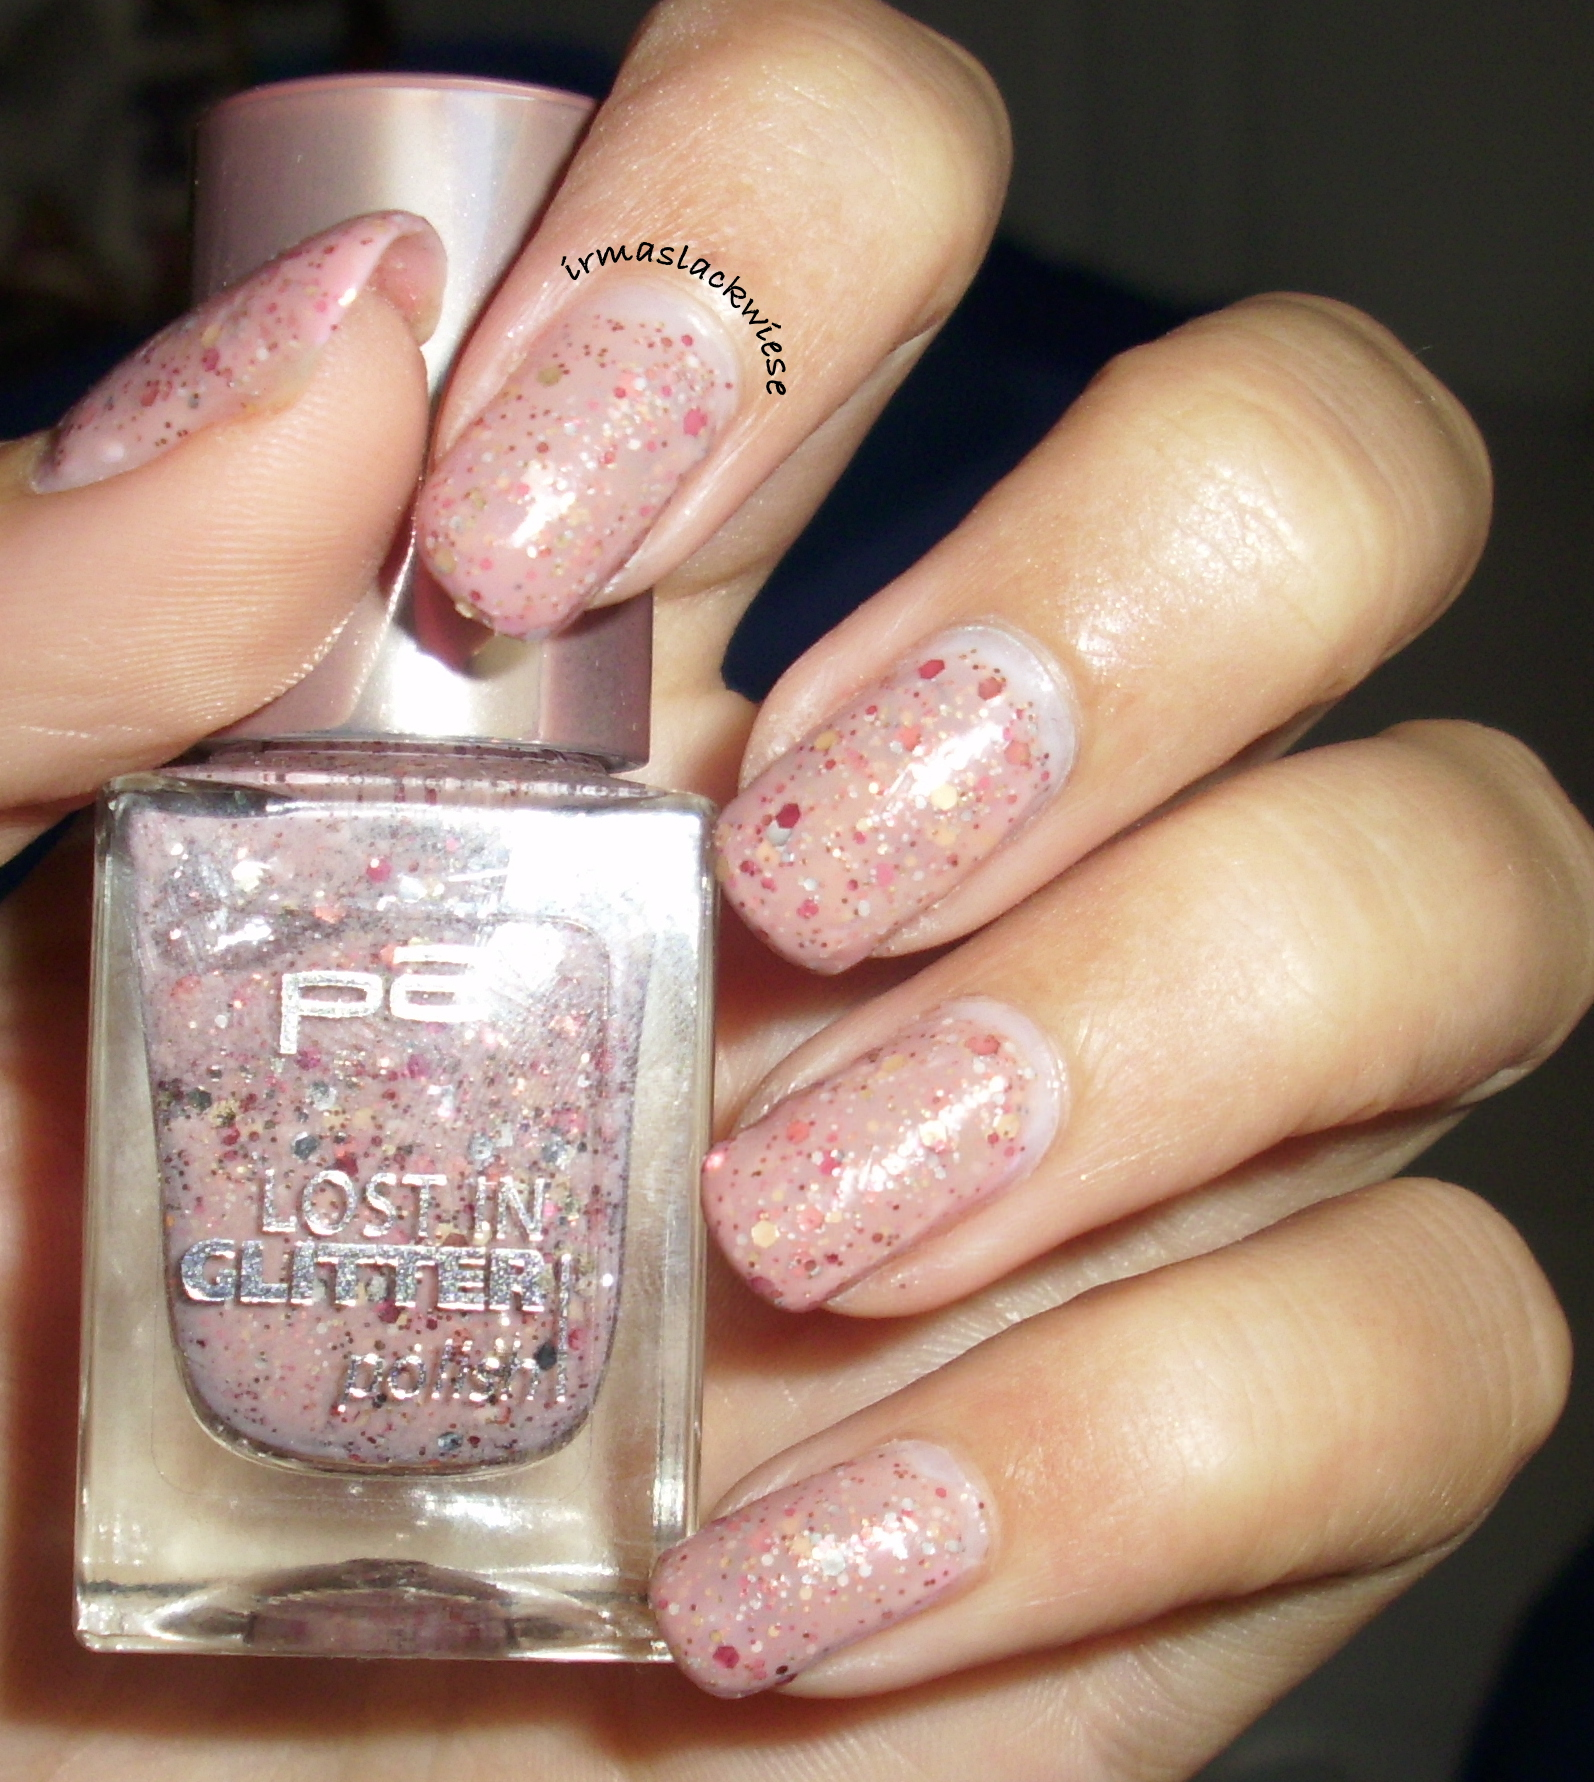 Nagellack Glitzer P2 Lost In Glitter Crazy Natural Irmas Lackwiese